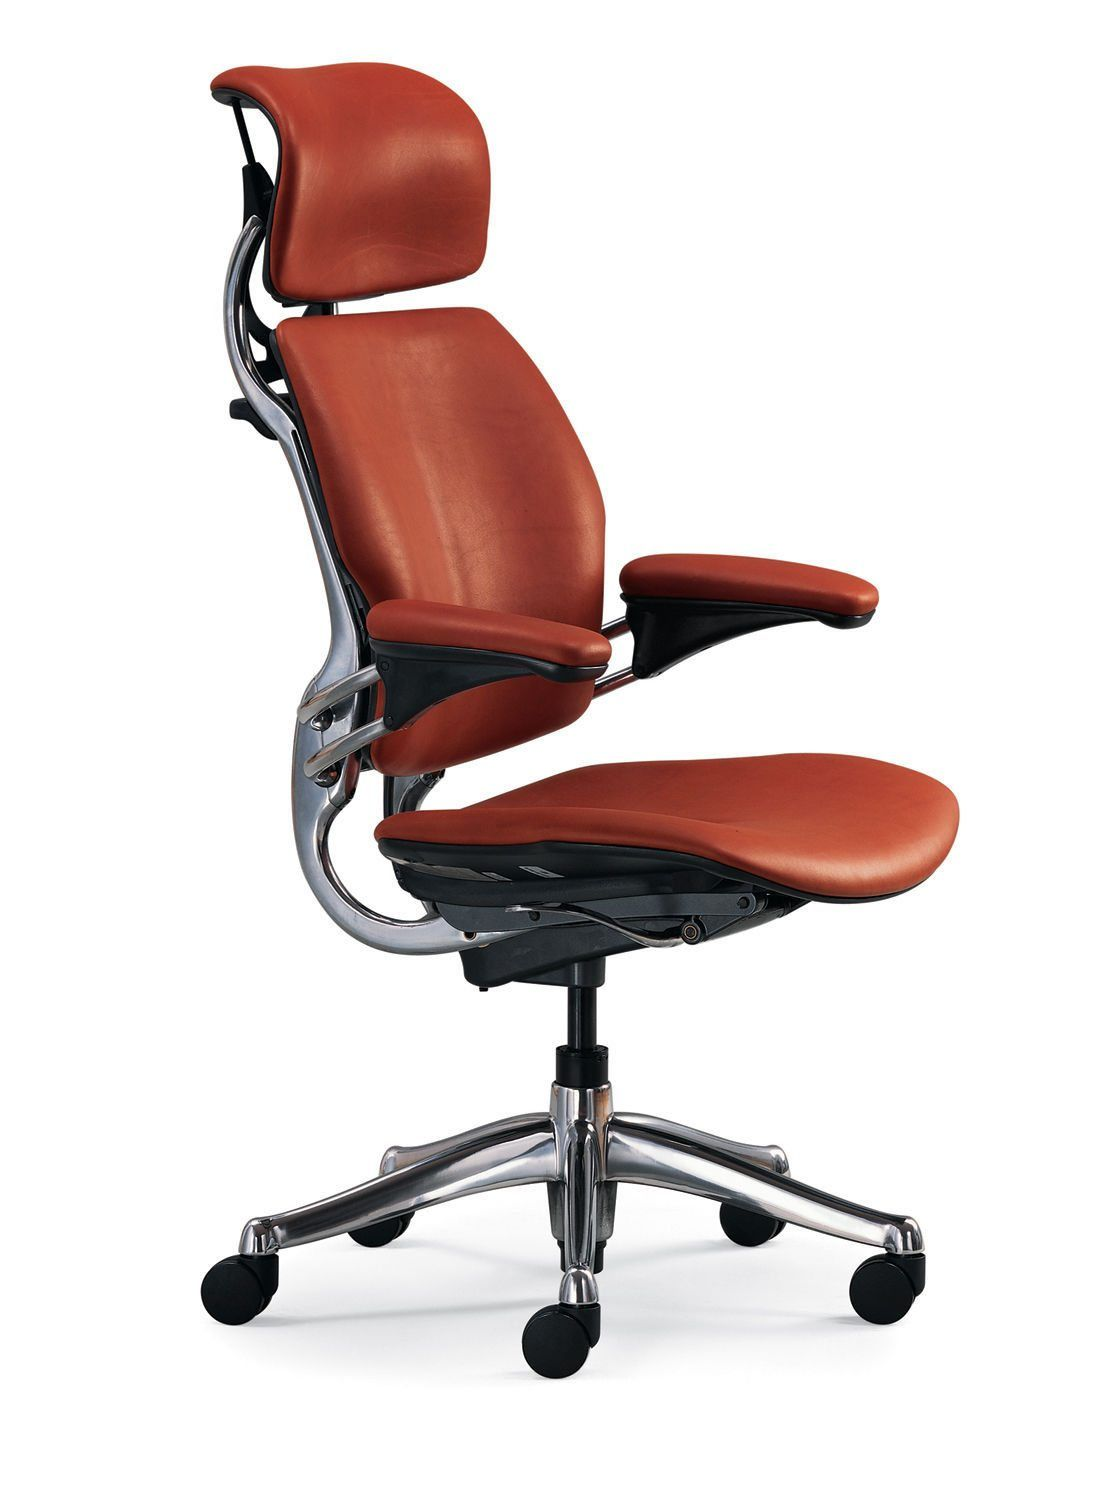 Most Ergonomic Desk Chair Best Home Office Desks Check More At Http